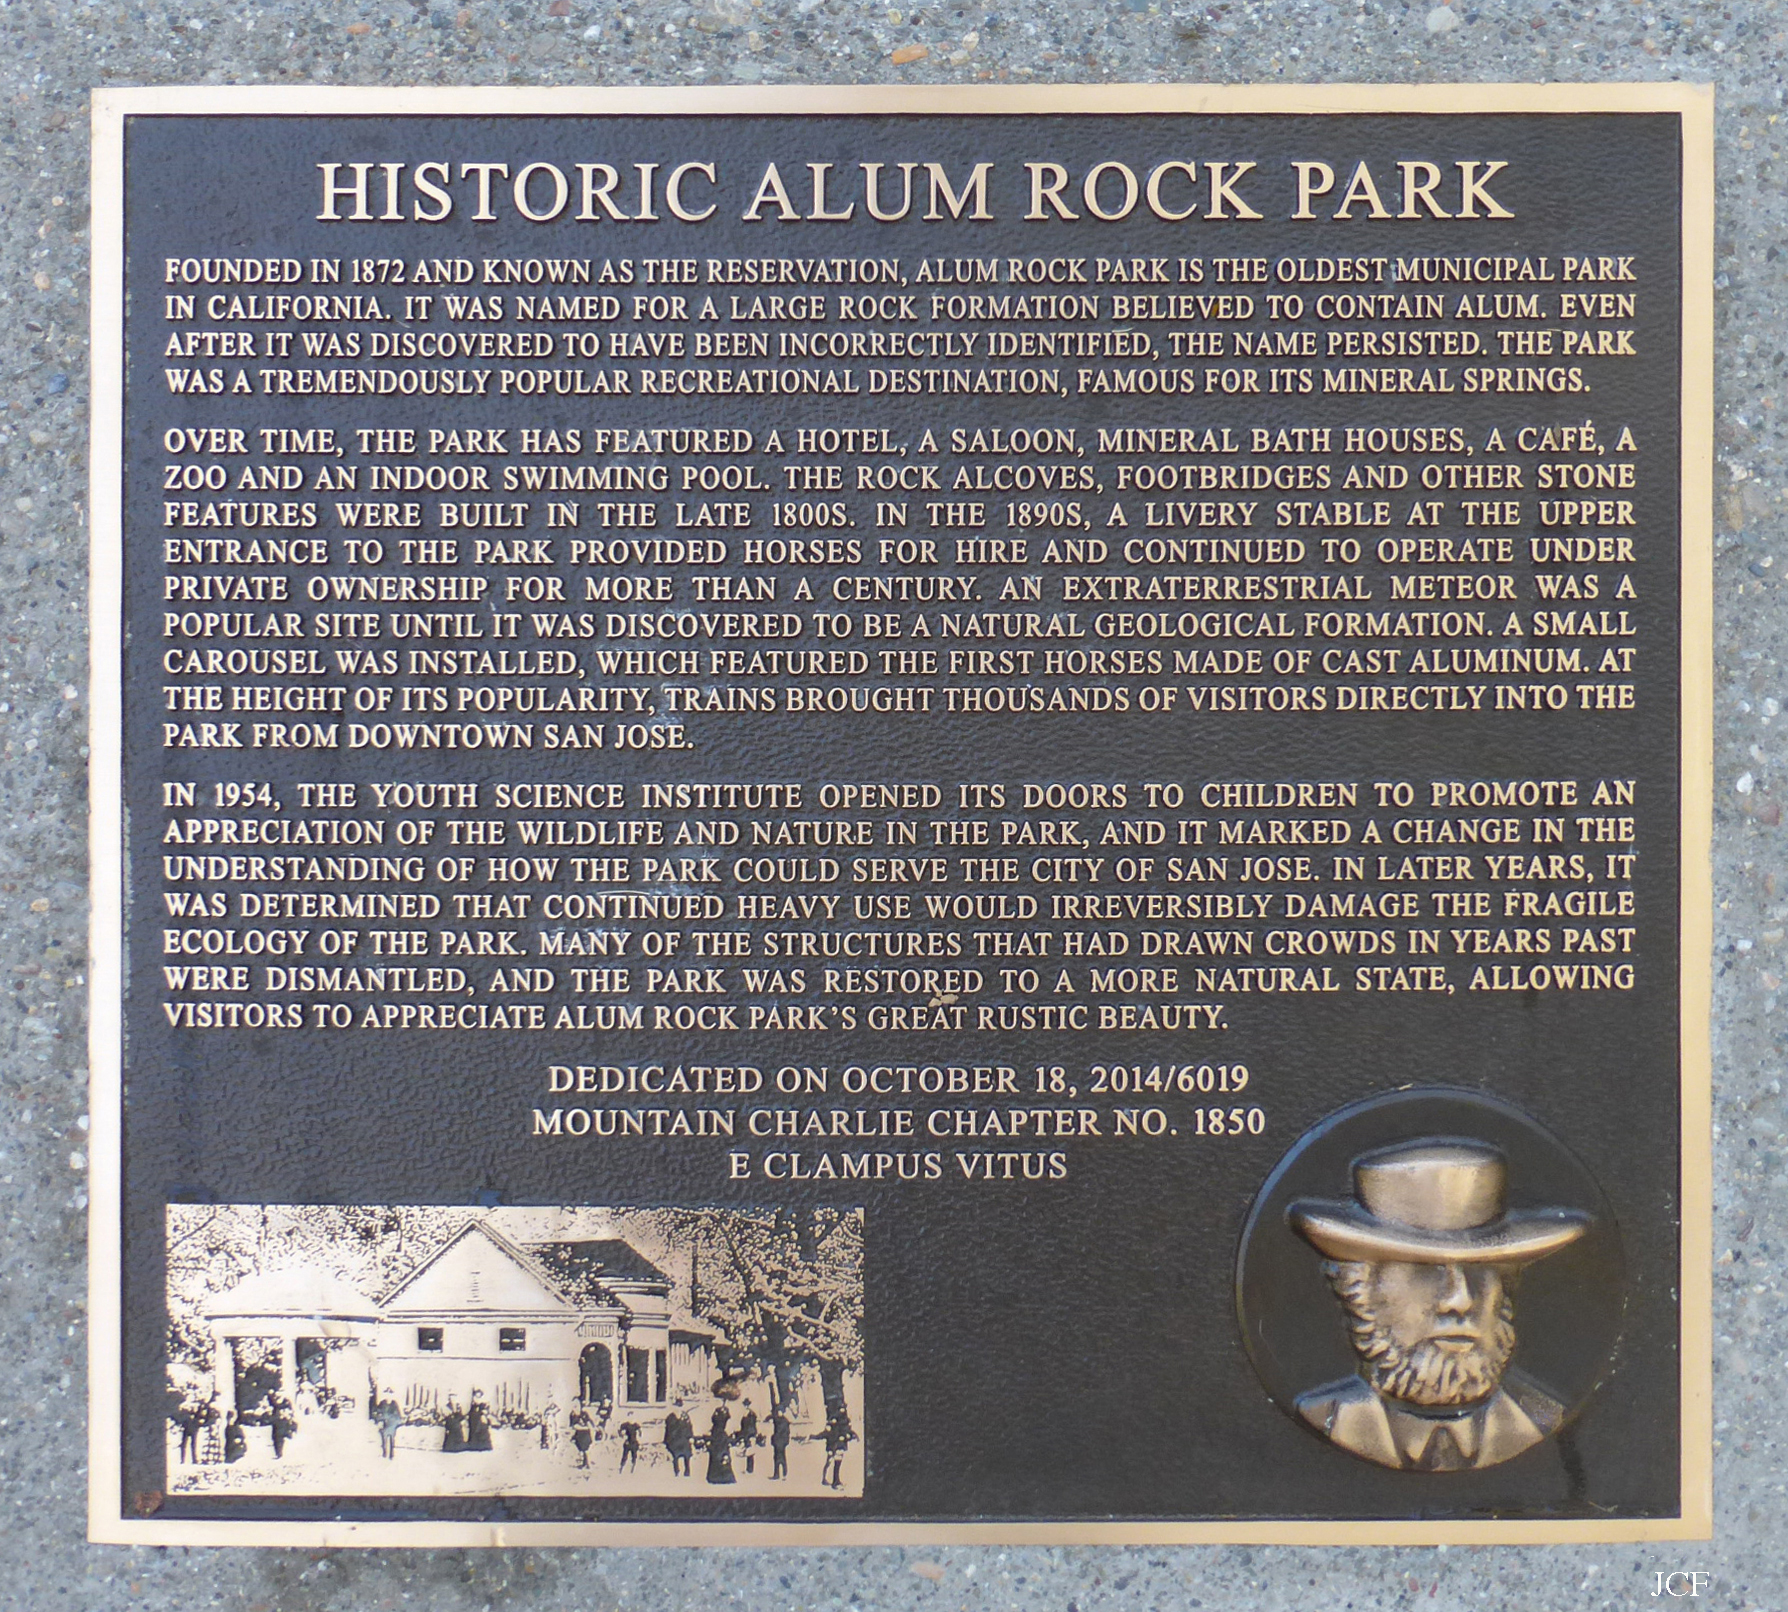 Photo of plaque wide